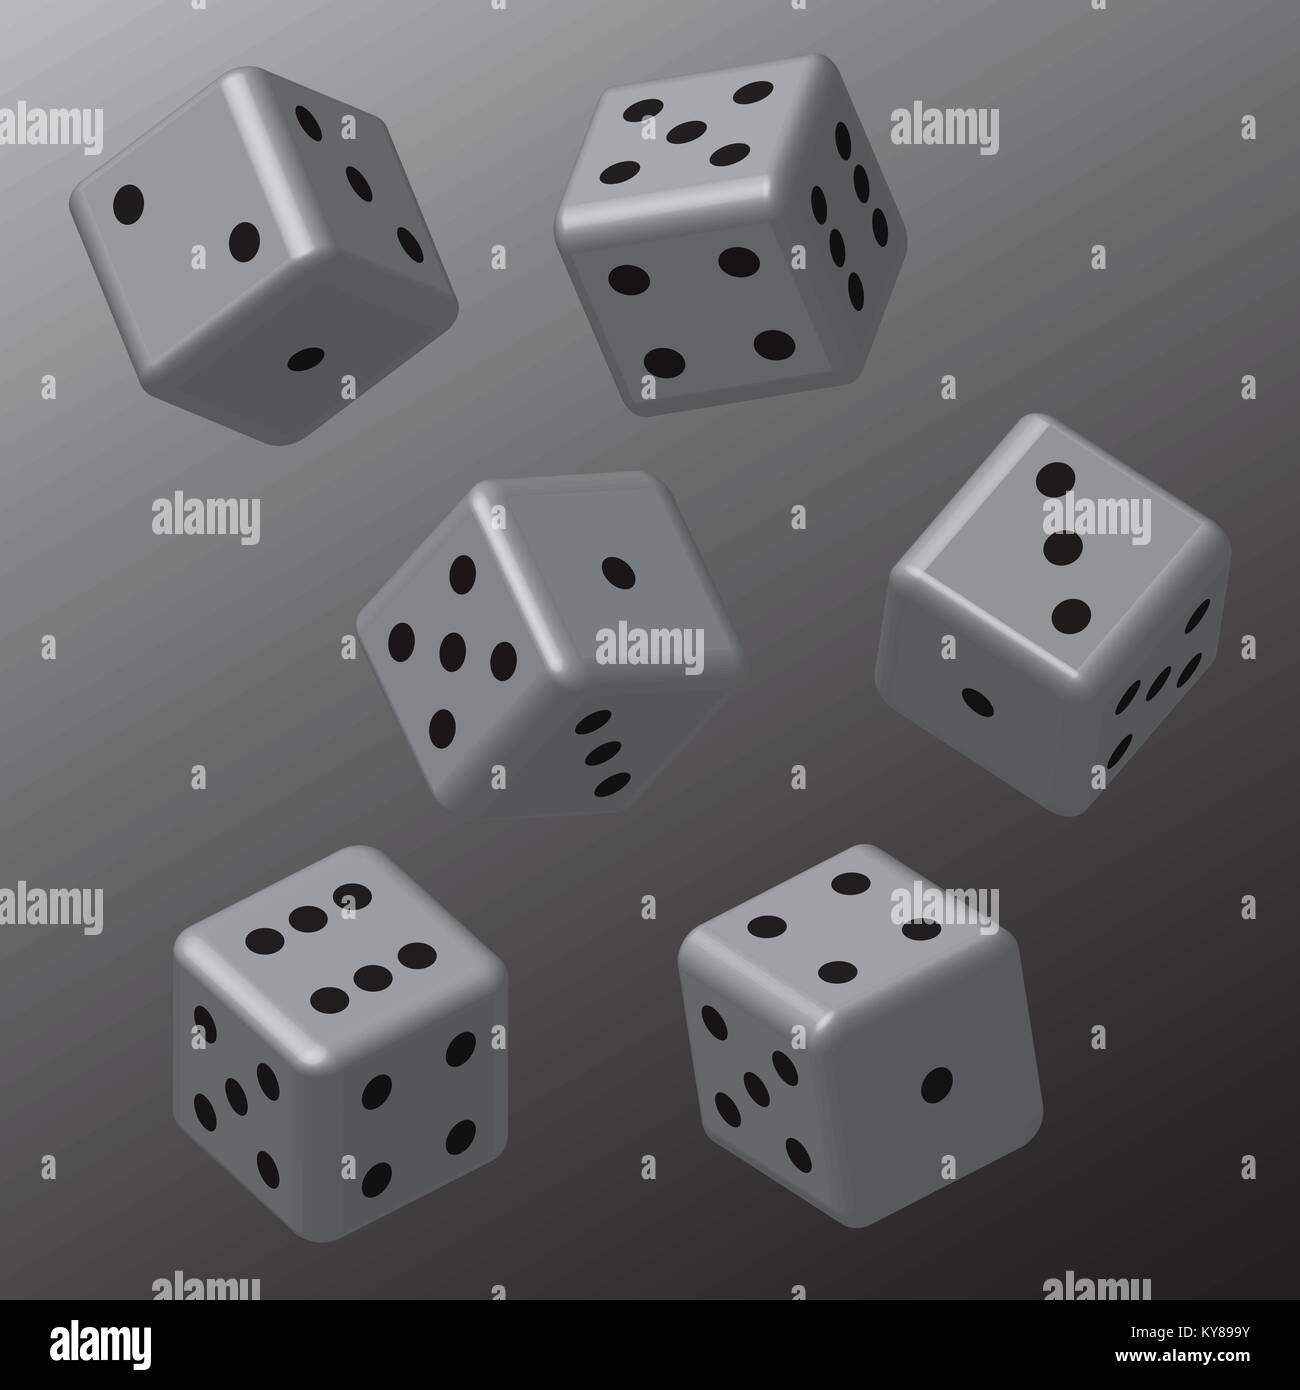 Grey Dice with Black Points - Stock Image